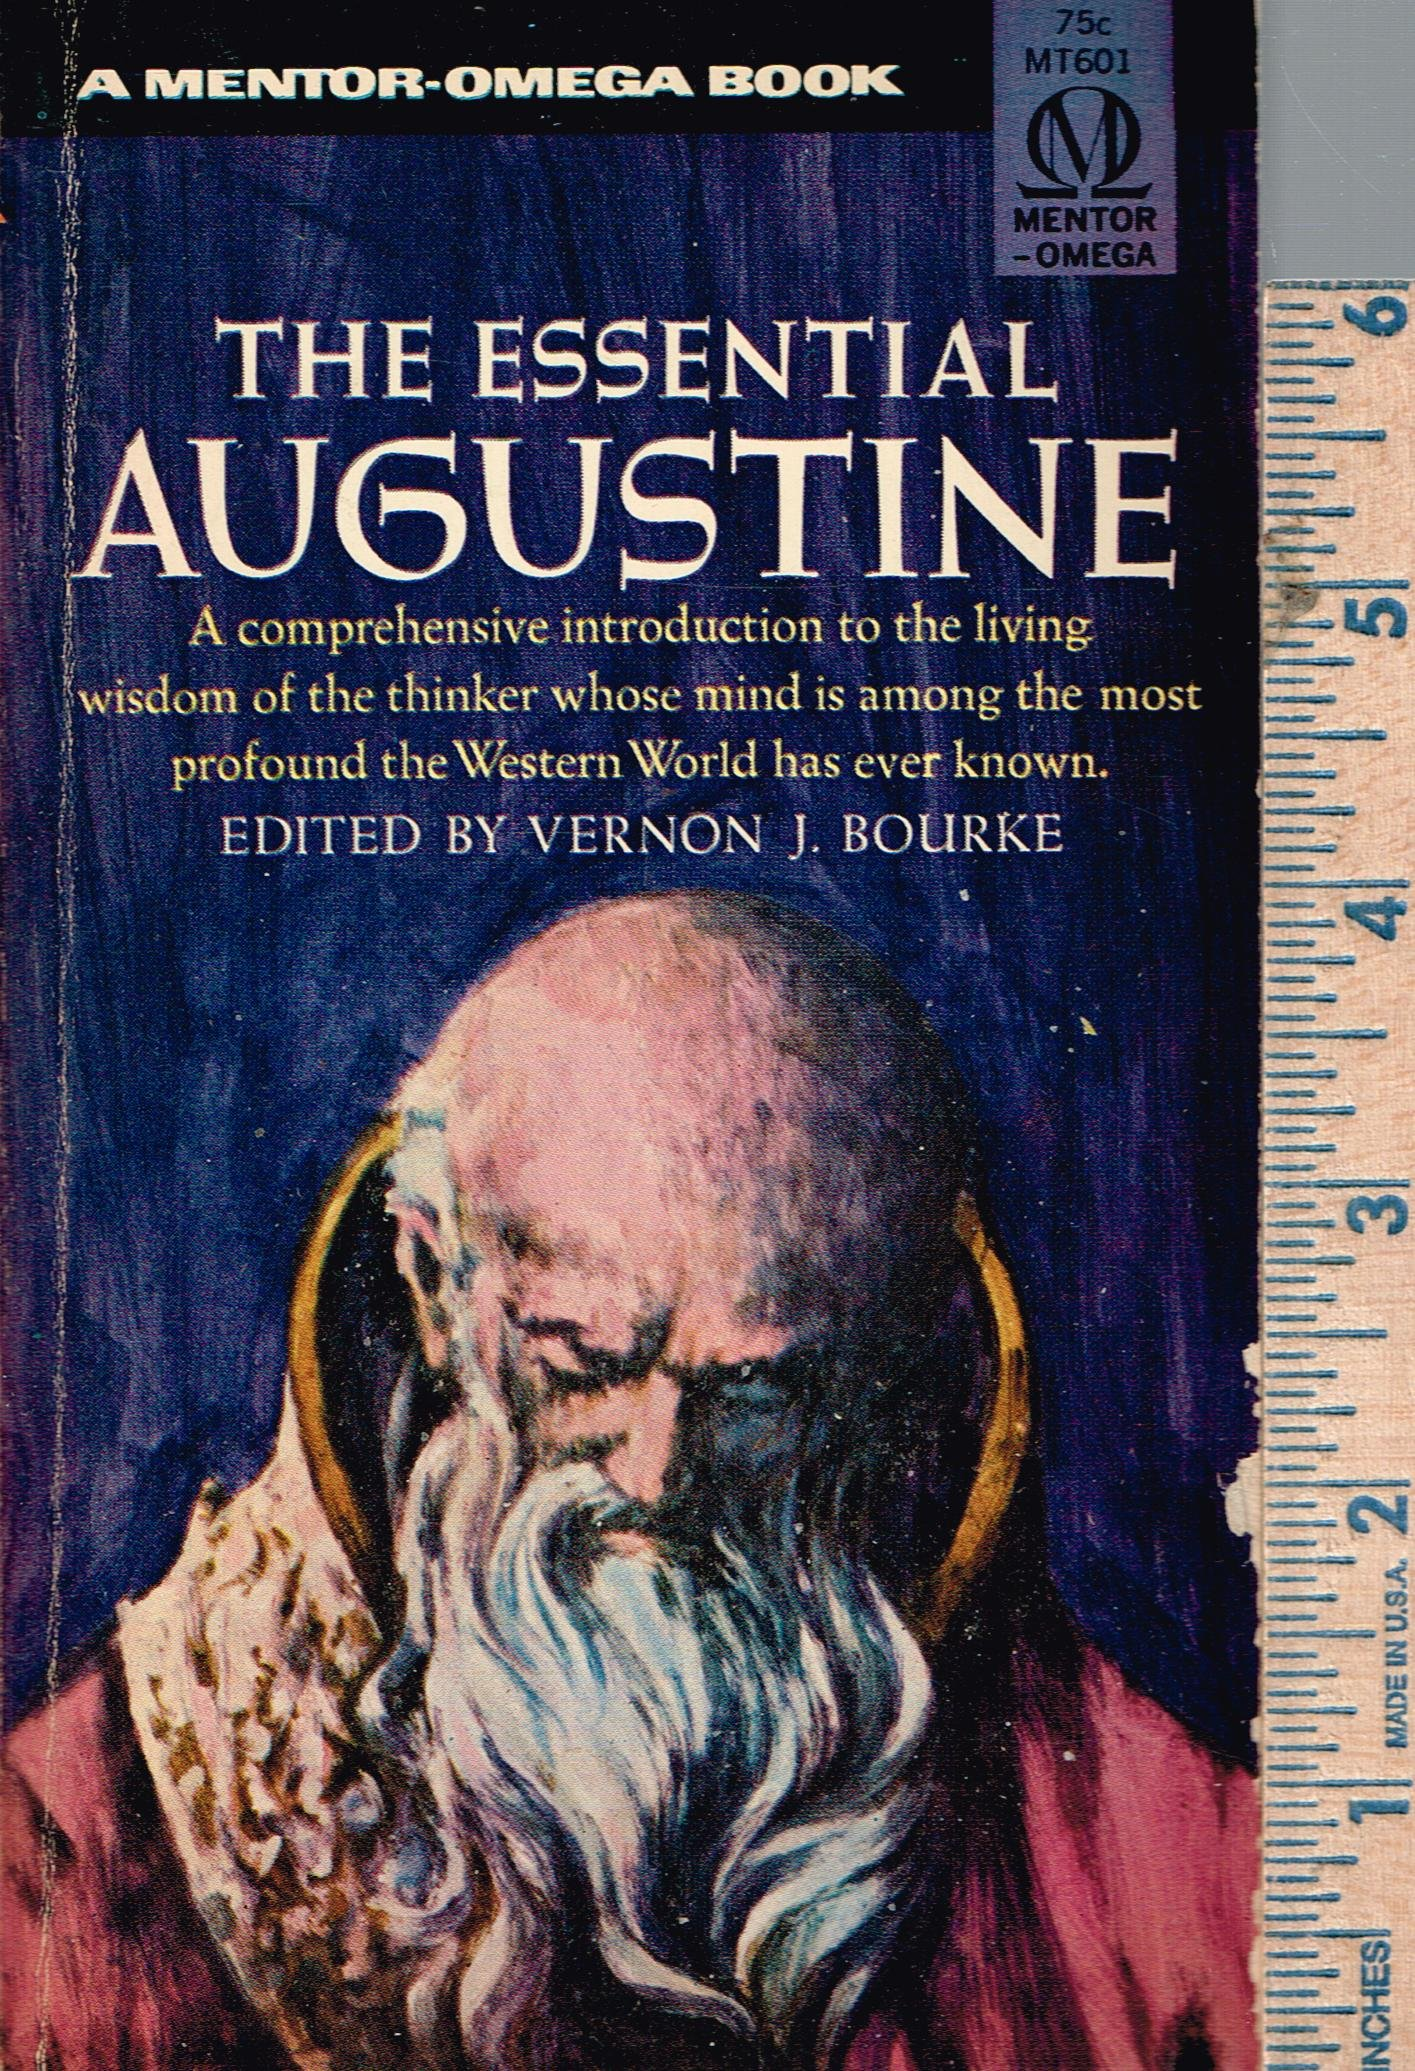 The Essential Augustine (A Mentor-Omega Book), Vernon J. Bourke (Edited by)